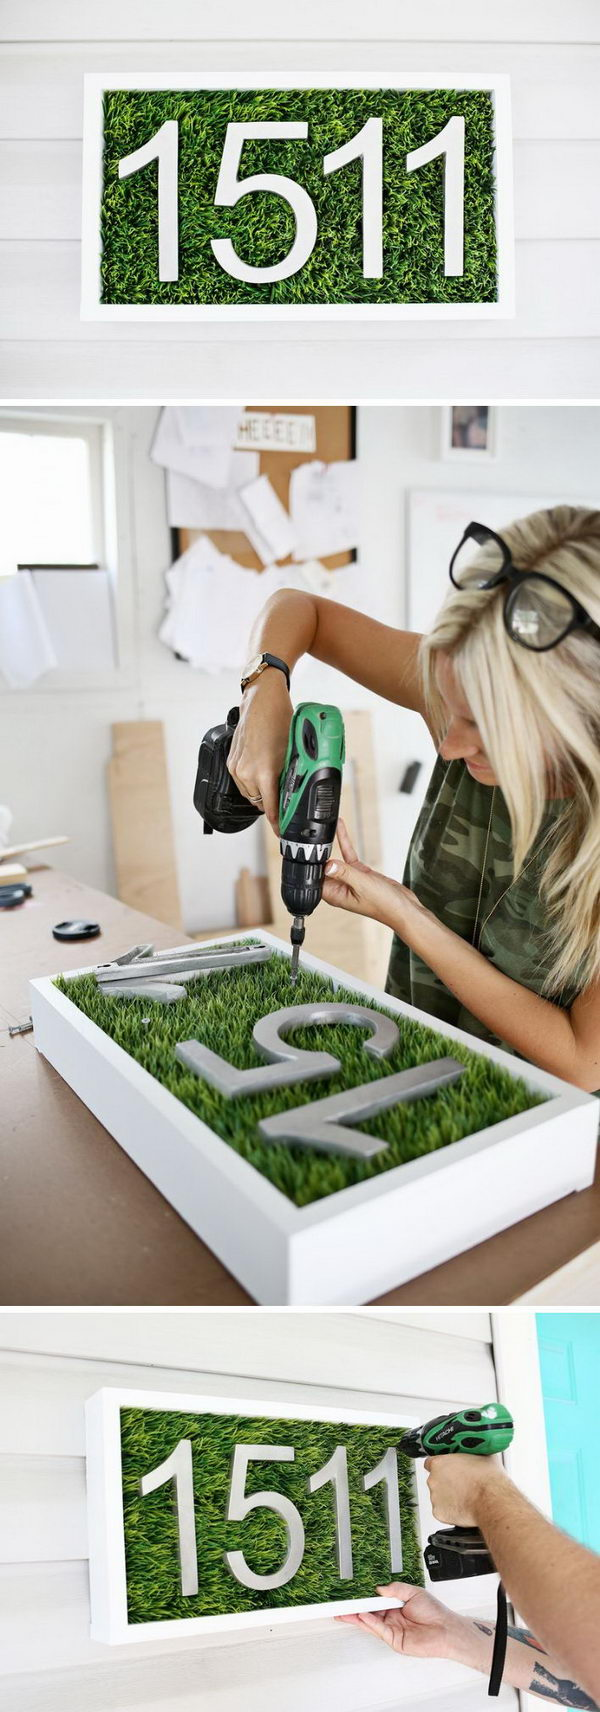 DIY Faux Grass House Number Display.